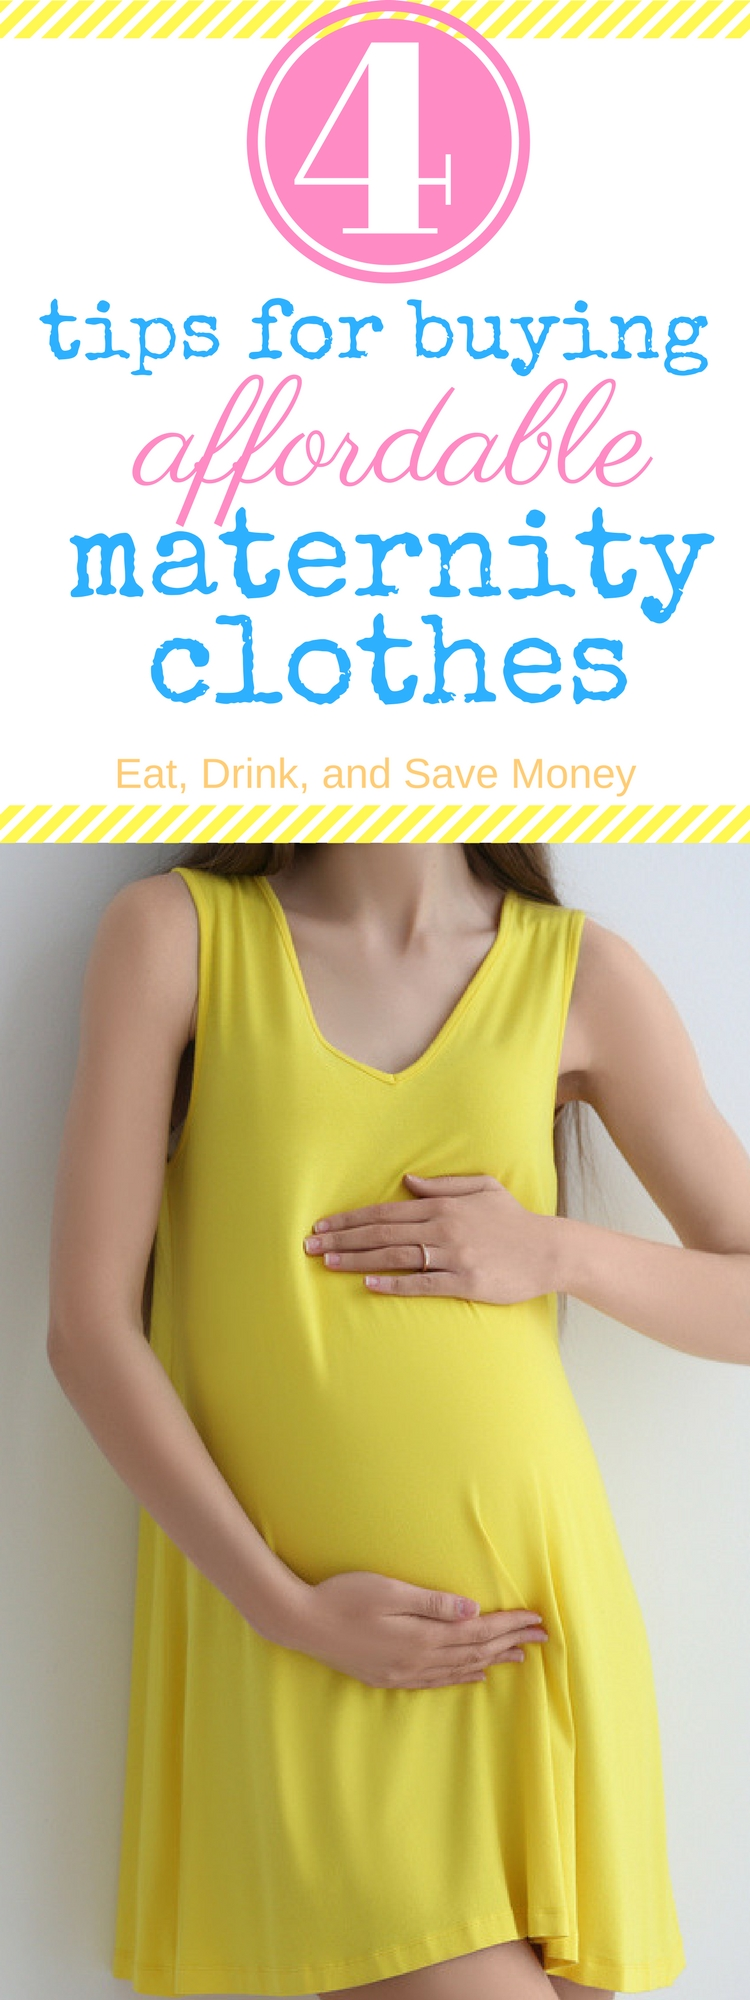 4 tips for buying affordable maternity clothes, get inexpensive maternity clothes, how to find cheap maternity clothes